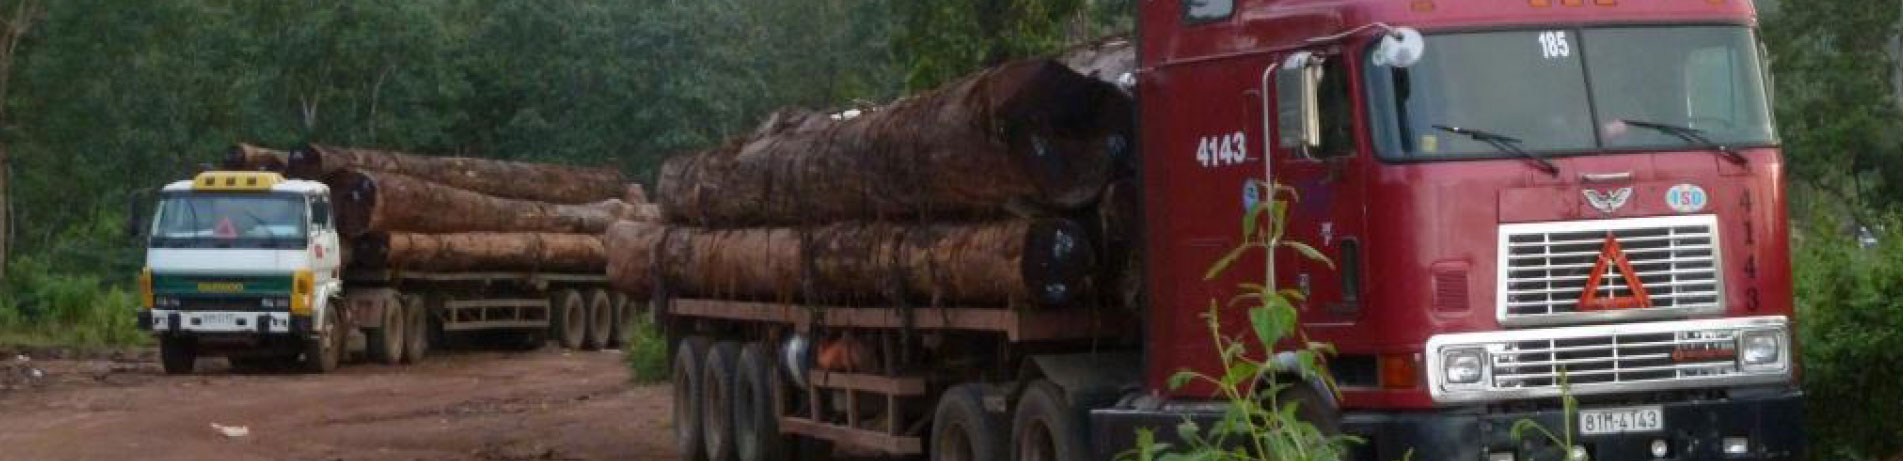 Trucks carrying a load of illegal timber in Laos